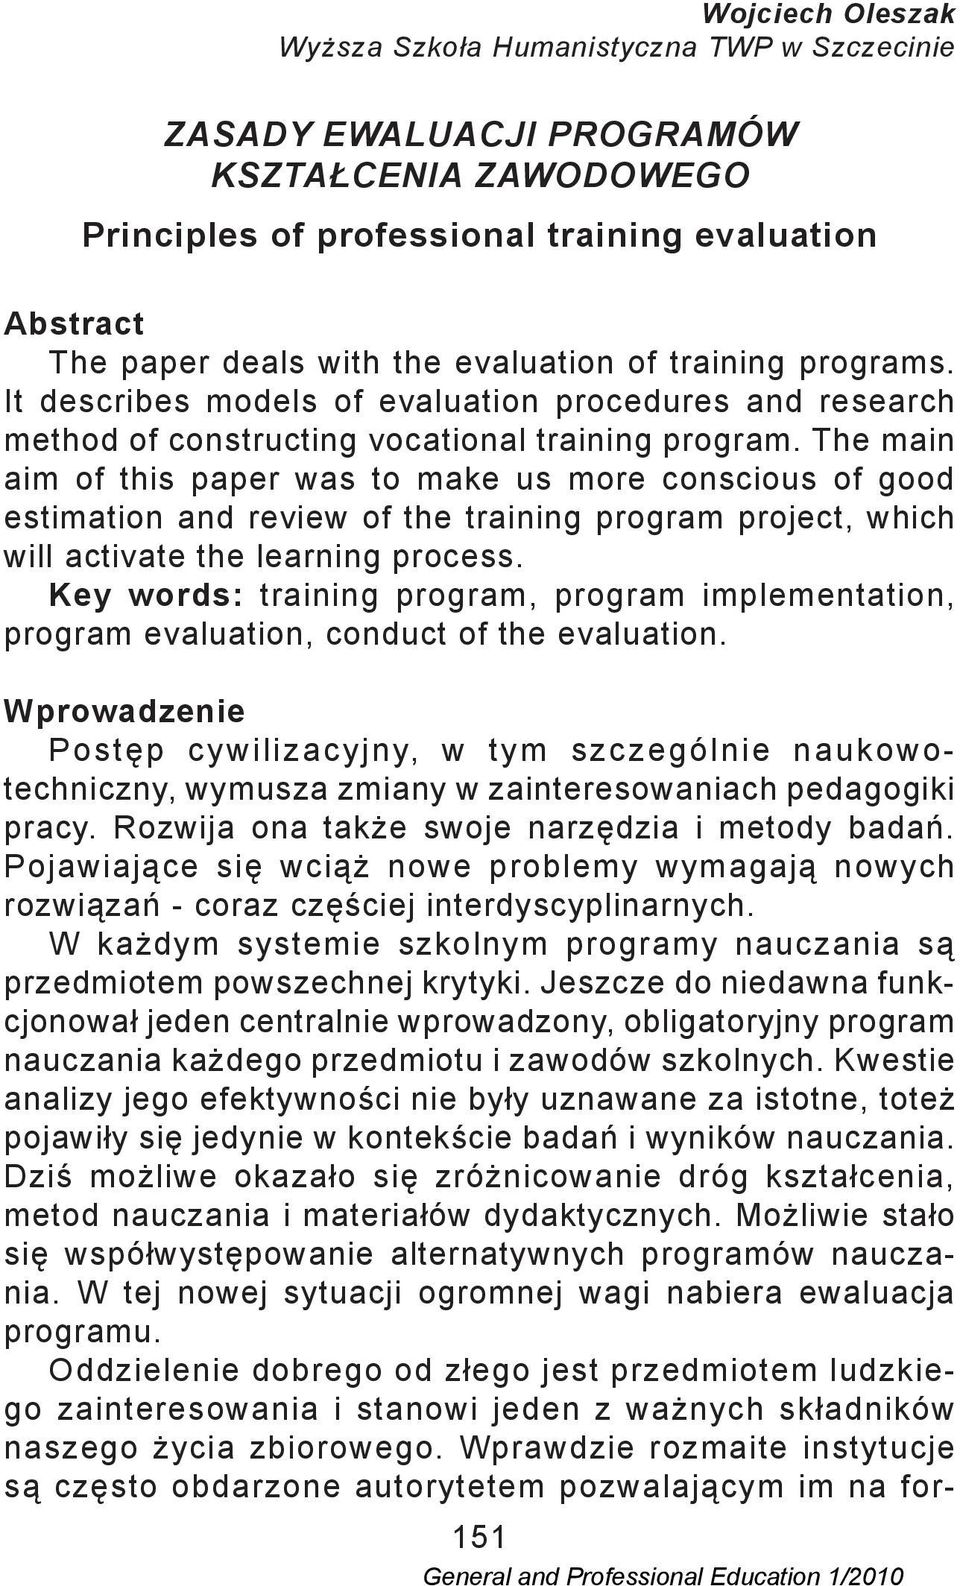 The main aim of this paper was to make us more conscious of good estimation and review of the training program project, which will activate the learning process.